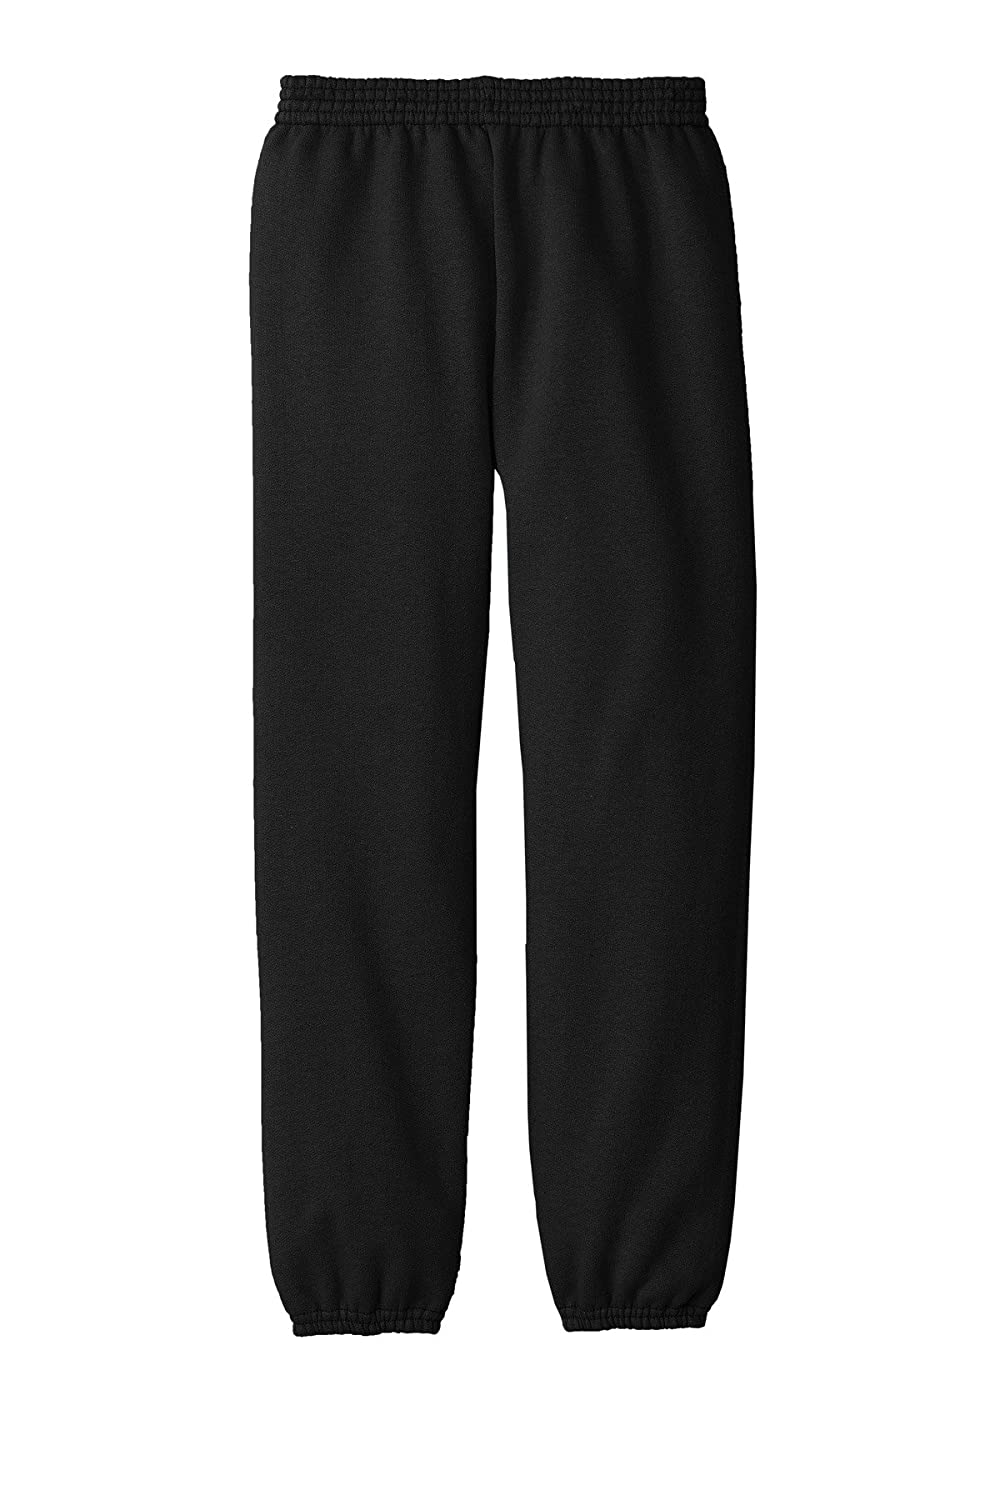 b97a75752c7781 Youth Soft and Cozy Sweatpants in 8 Colors. Sizes Youth XS-XL at Amazon  Men's Clothing store: